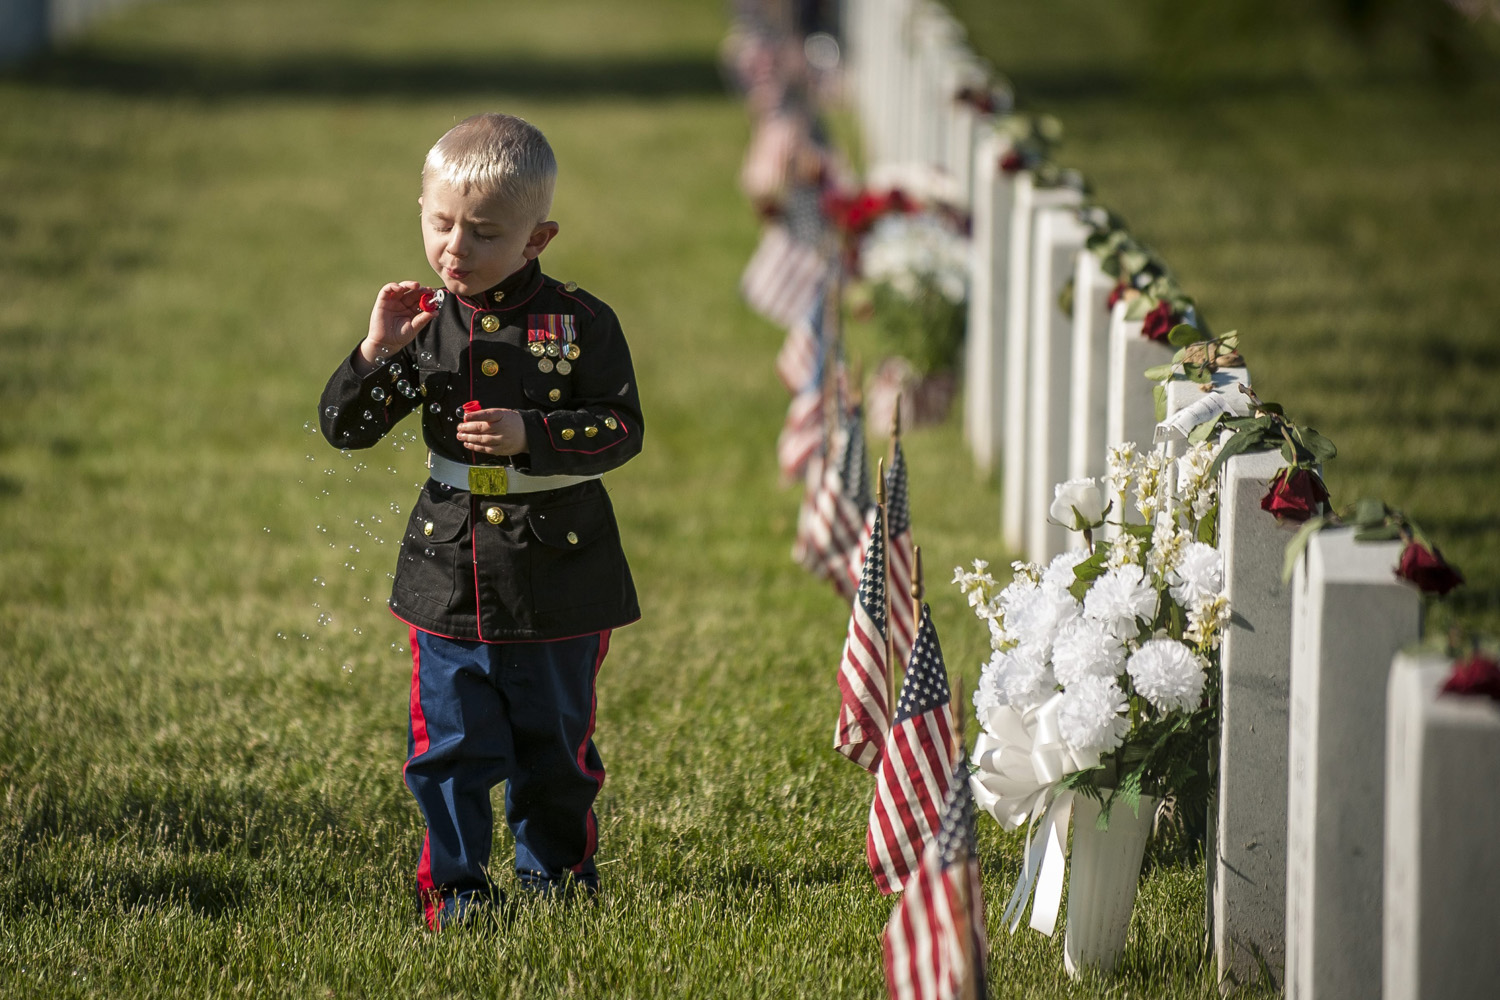 May 26, 2014. Christian Jacobs, 3, of Hertford, North Carolina, blows bubbles at the gravesite of his father, Marine Sgt. Christopher Jacobs, on Memorial Day at Arlington National Cemetery in Arlington, Virginia.